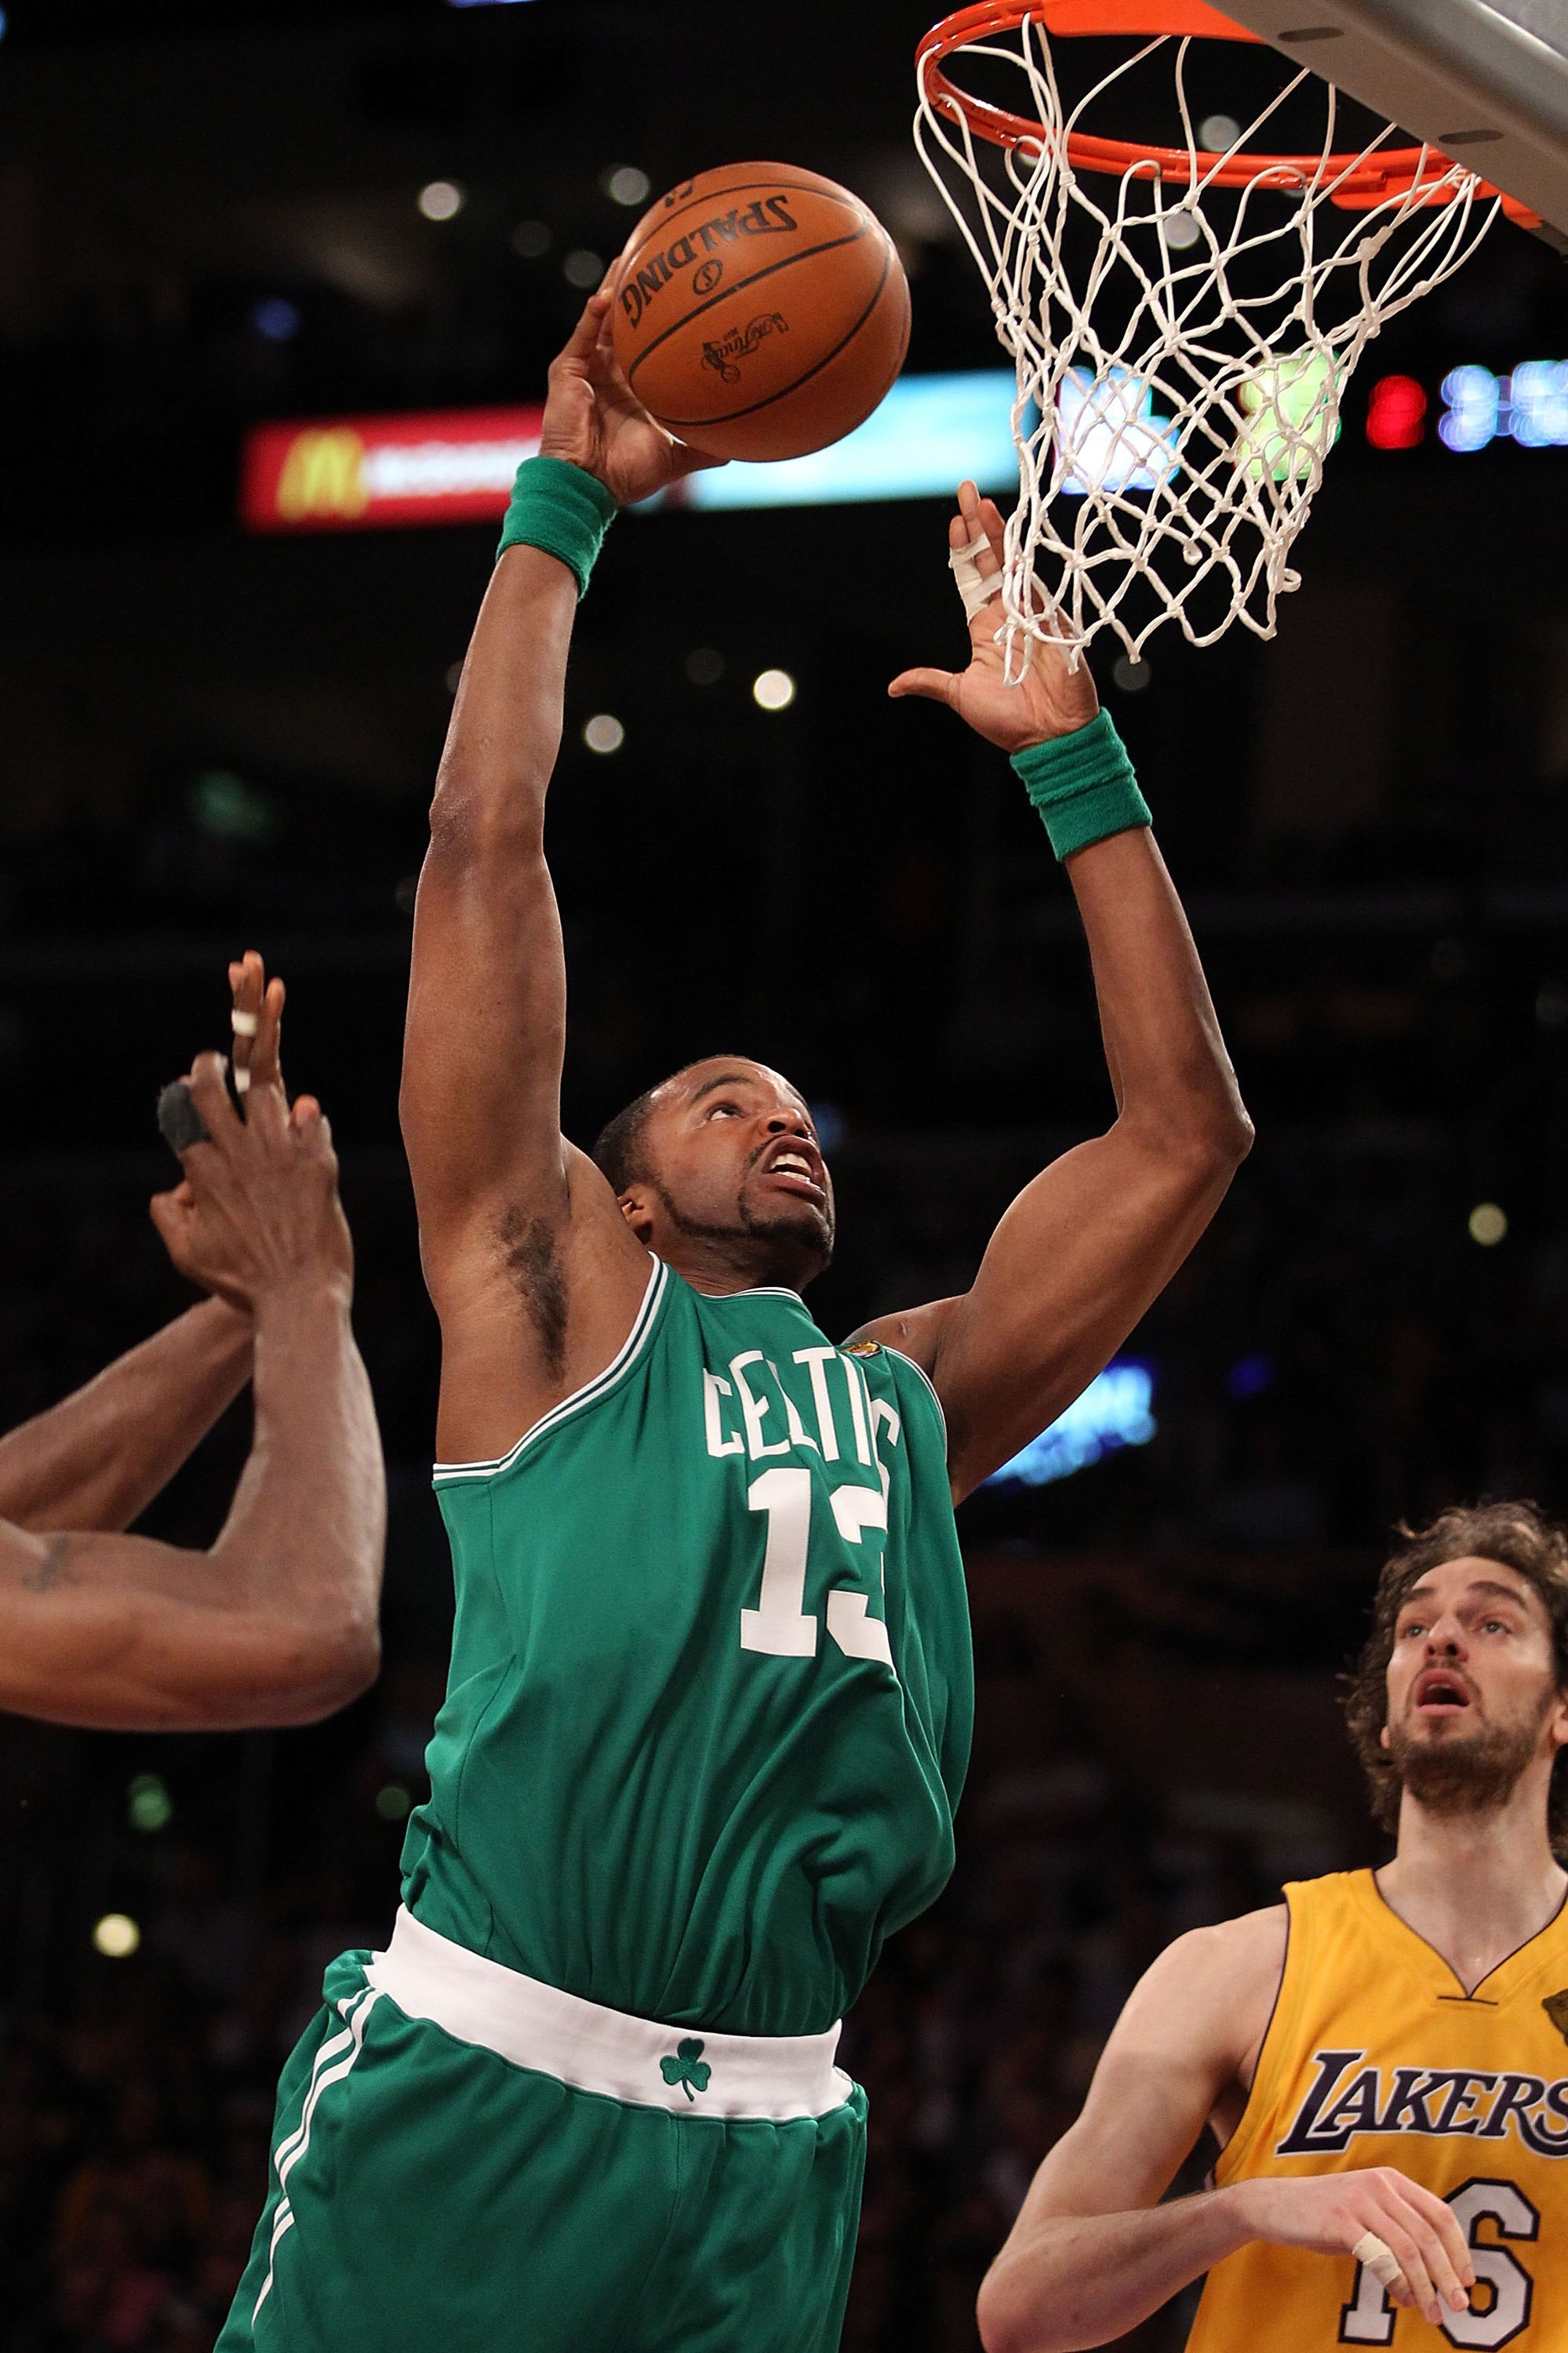 LOS ANGELES, CA - JUNE 15:  Shelden Williams #13 of the Boston Celtics goes up to dunk the ball against the Los Angeles Lakers in Game Six of the 2010 NBA Finals at Staples Center on June 15, 2010 in Los Angeles, California.  NOTE TO USER: User expressly